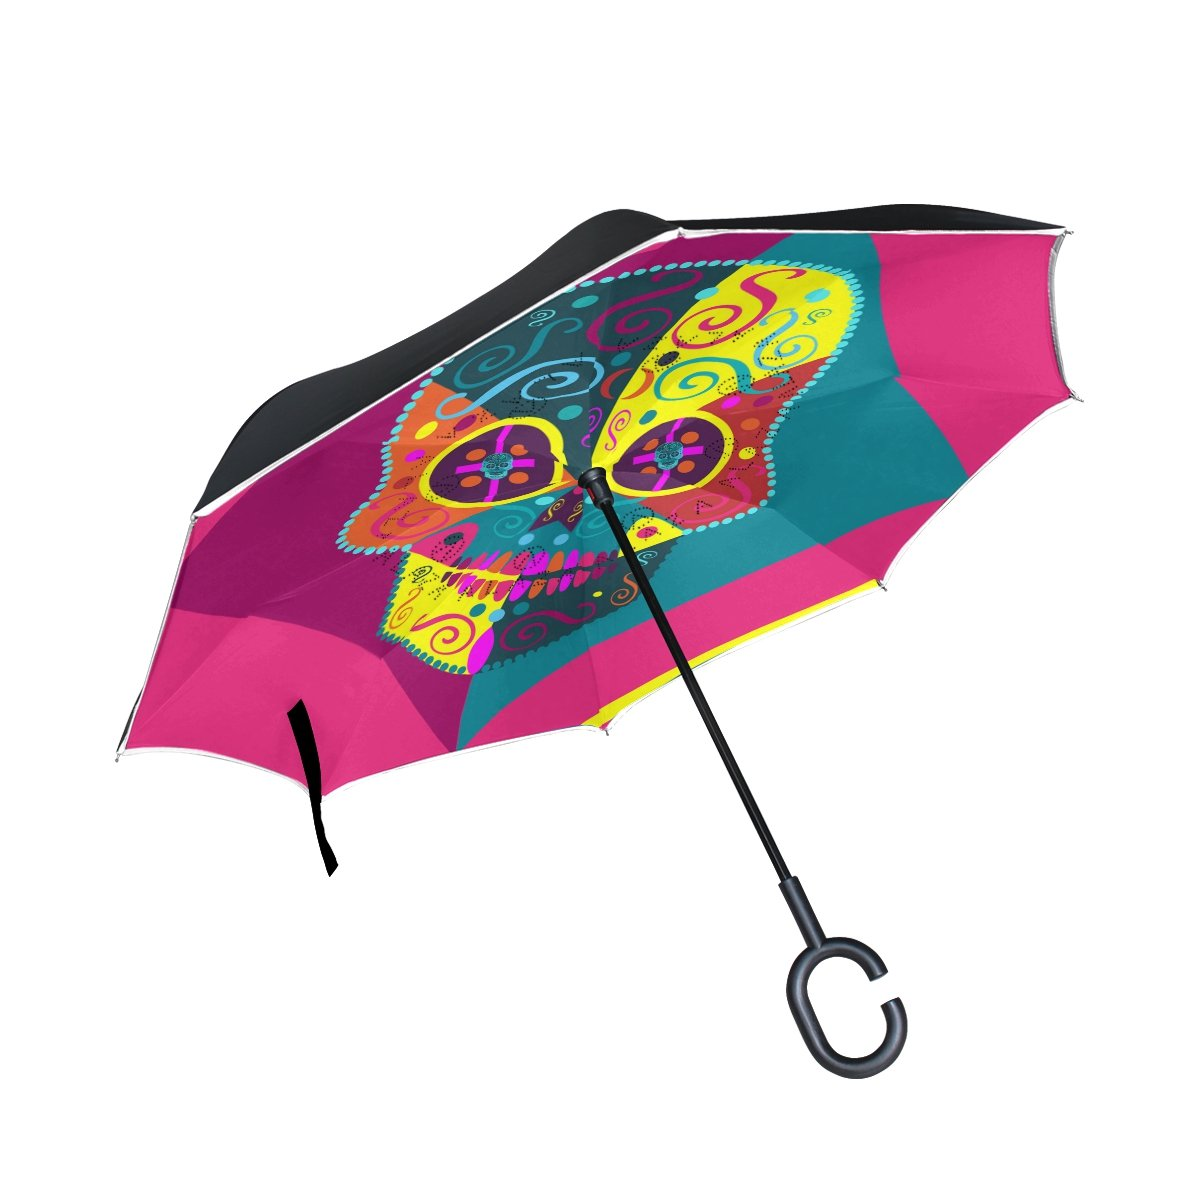 Yuihome Double Layer Reverse Folding Fun Colorful Skull Umbrella Windproof for Car Rain Outside with C-shapped Handle Automatic